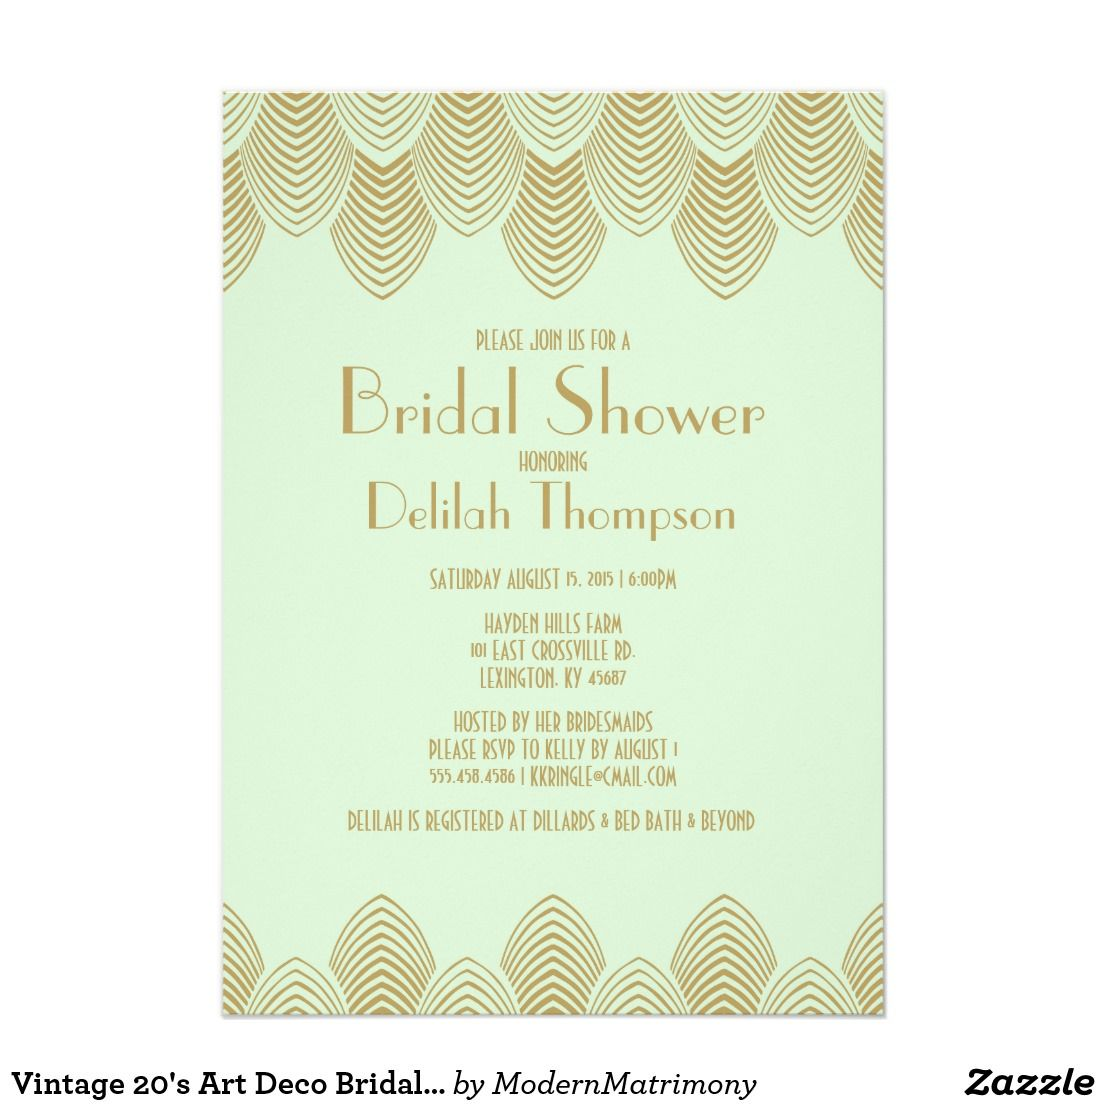 Vintage 20s art deco bridal shower invitation wedding bridal vintage 20s art deco bridal shower invitation filmwisefo